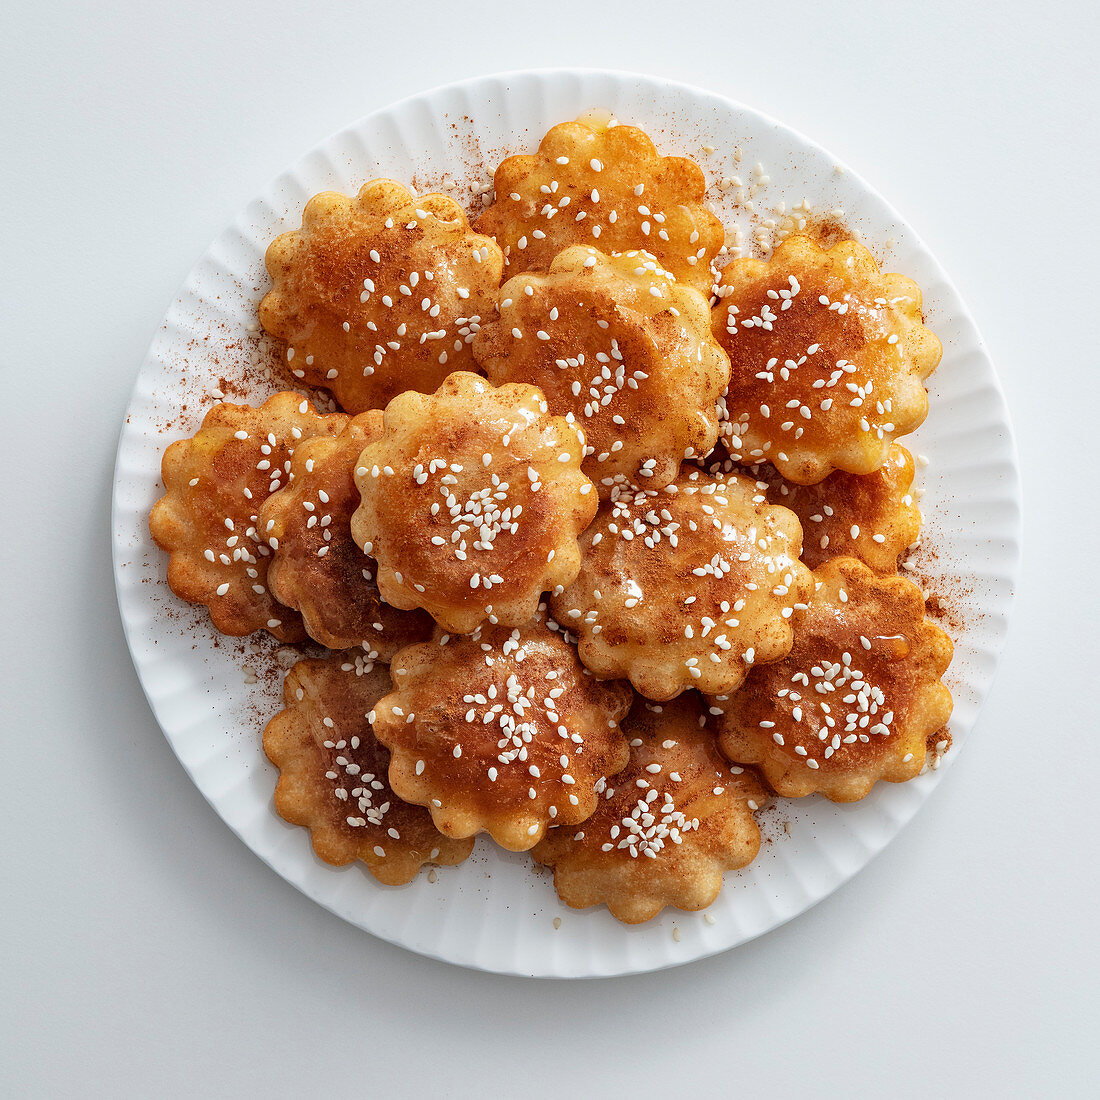 Yak Kaw (deep-fried ginger pastries with honey syrup, Korea)